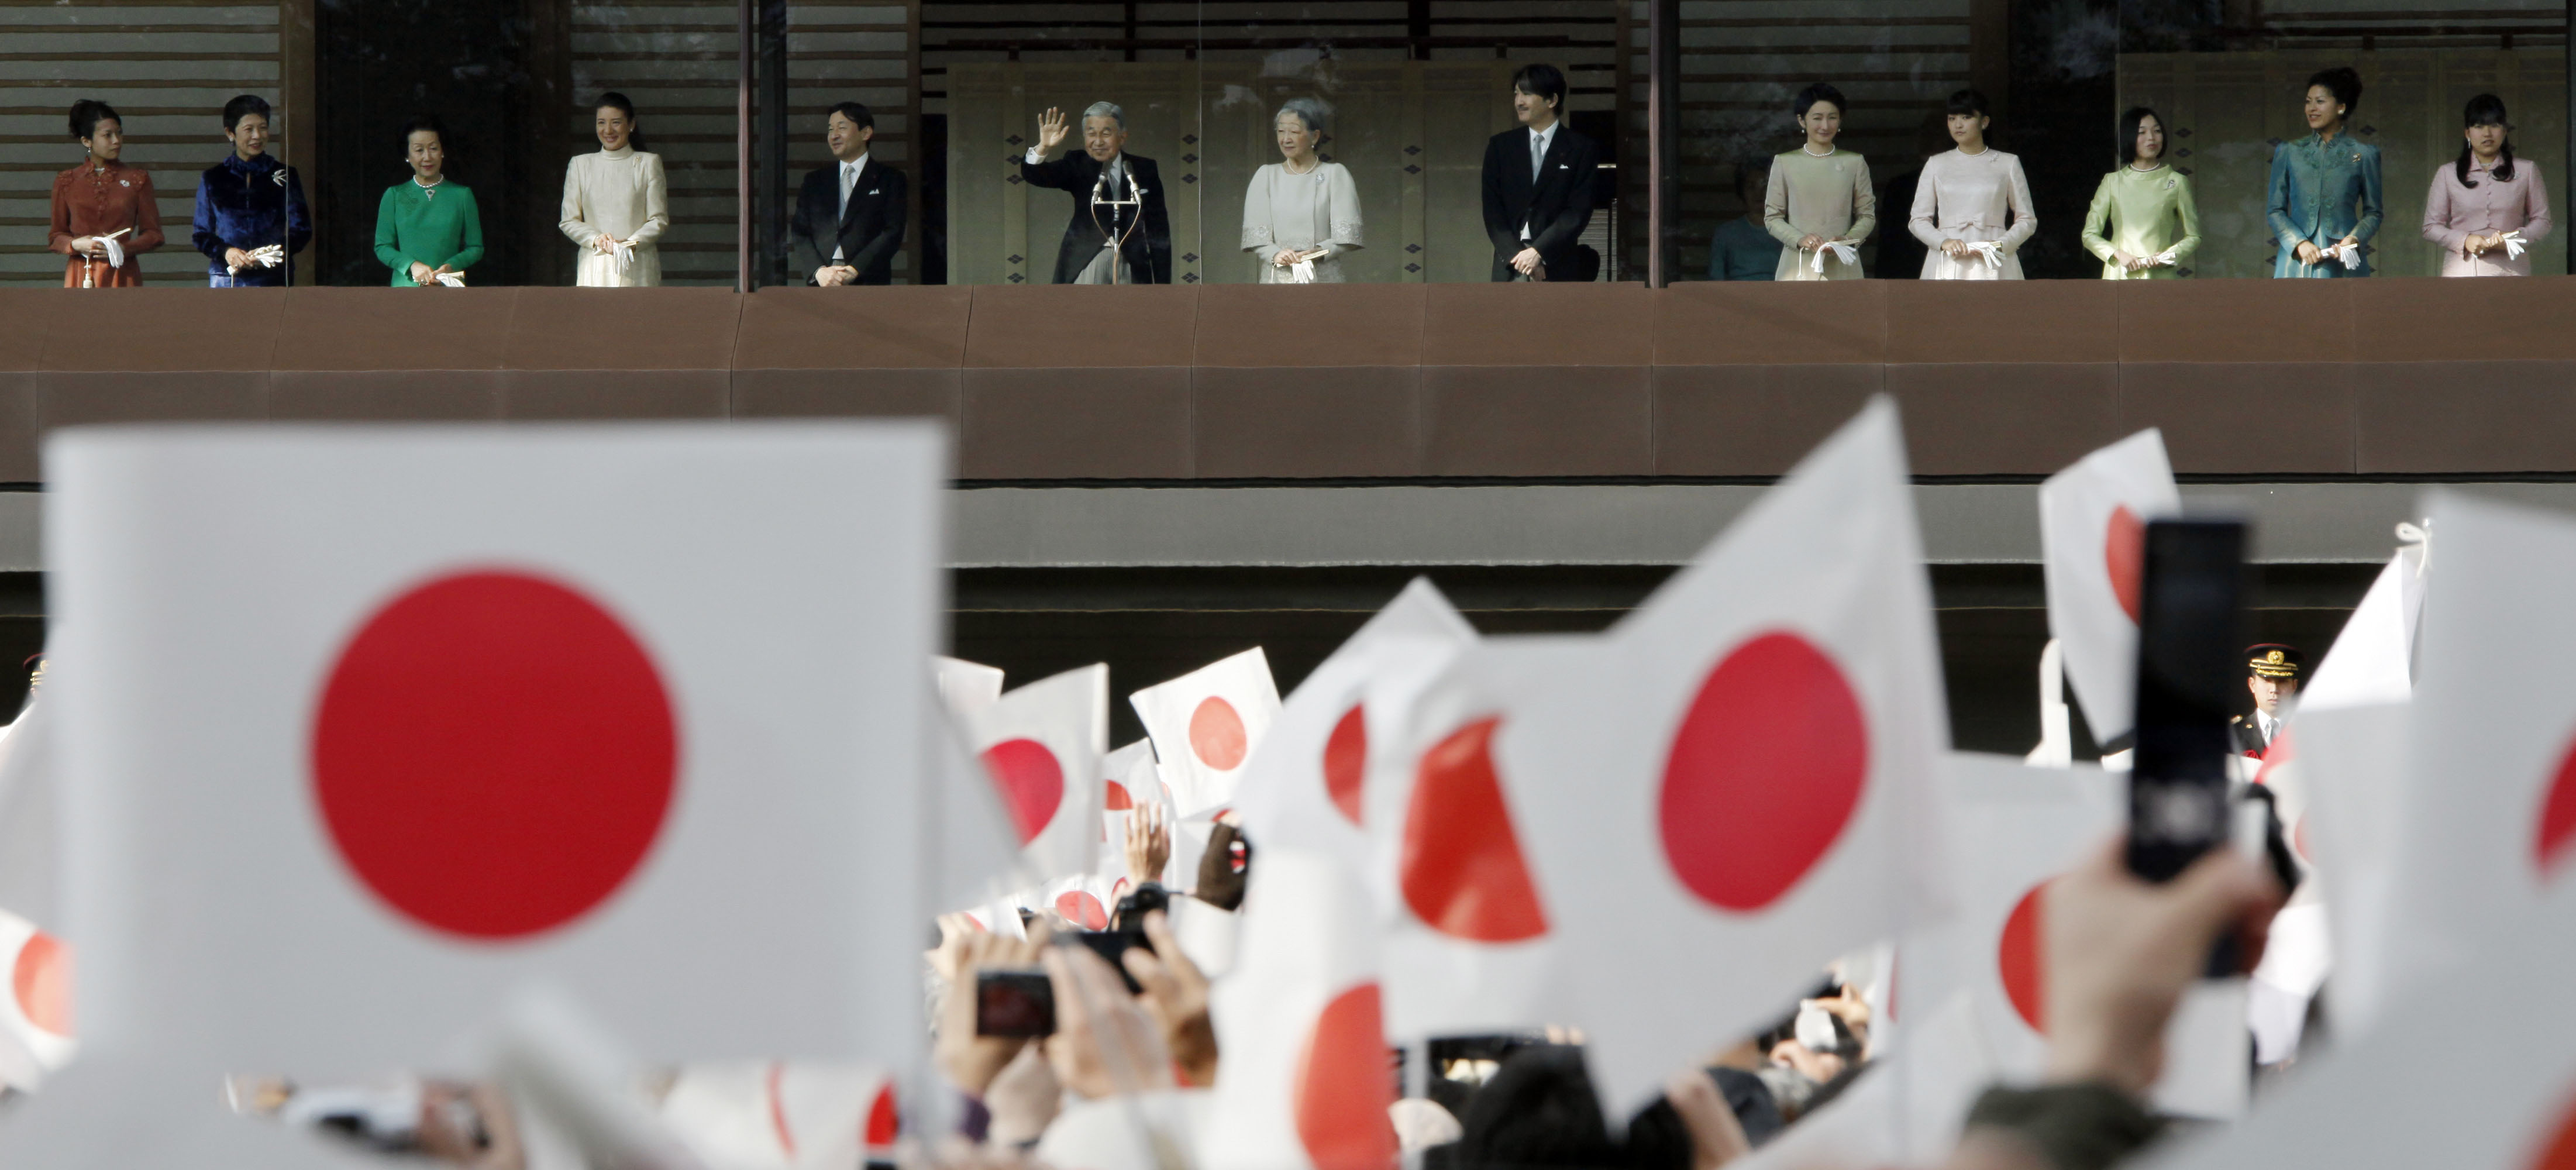 Ever-decreasing circles: Emperor Akihito, flanked by other members of the Imperial family, waves to well-wishers from the balcony during a New Year's public appearance at the Imperial Palace in Tokyo on Jan. 2. | AP